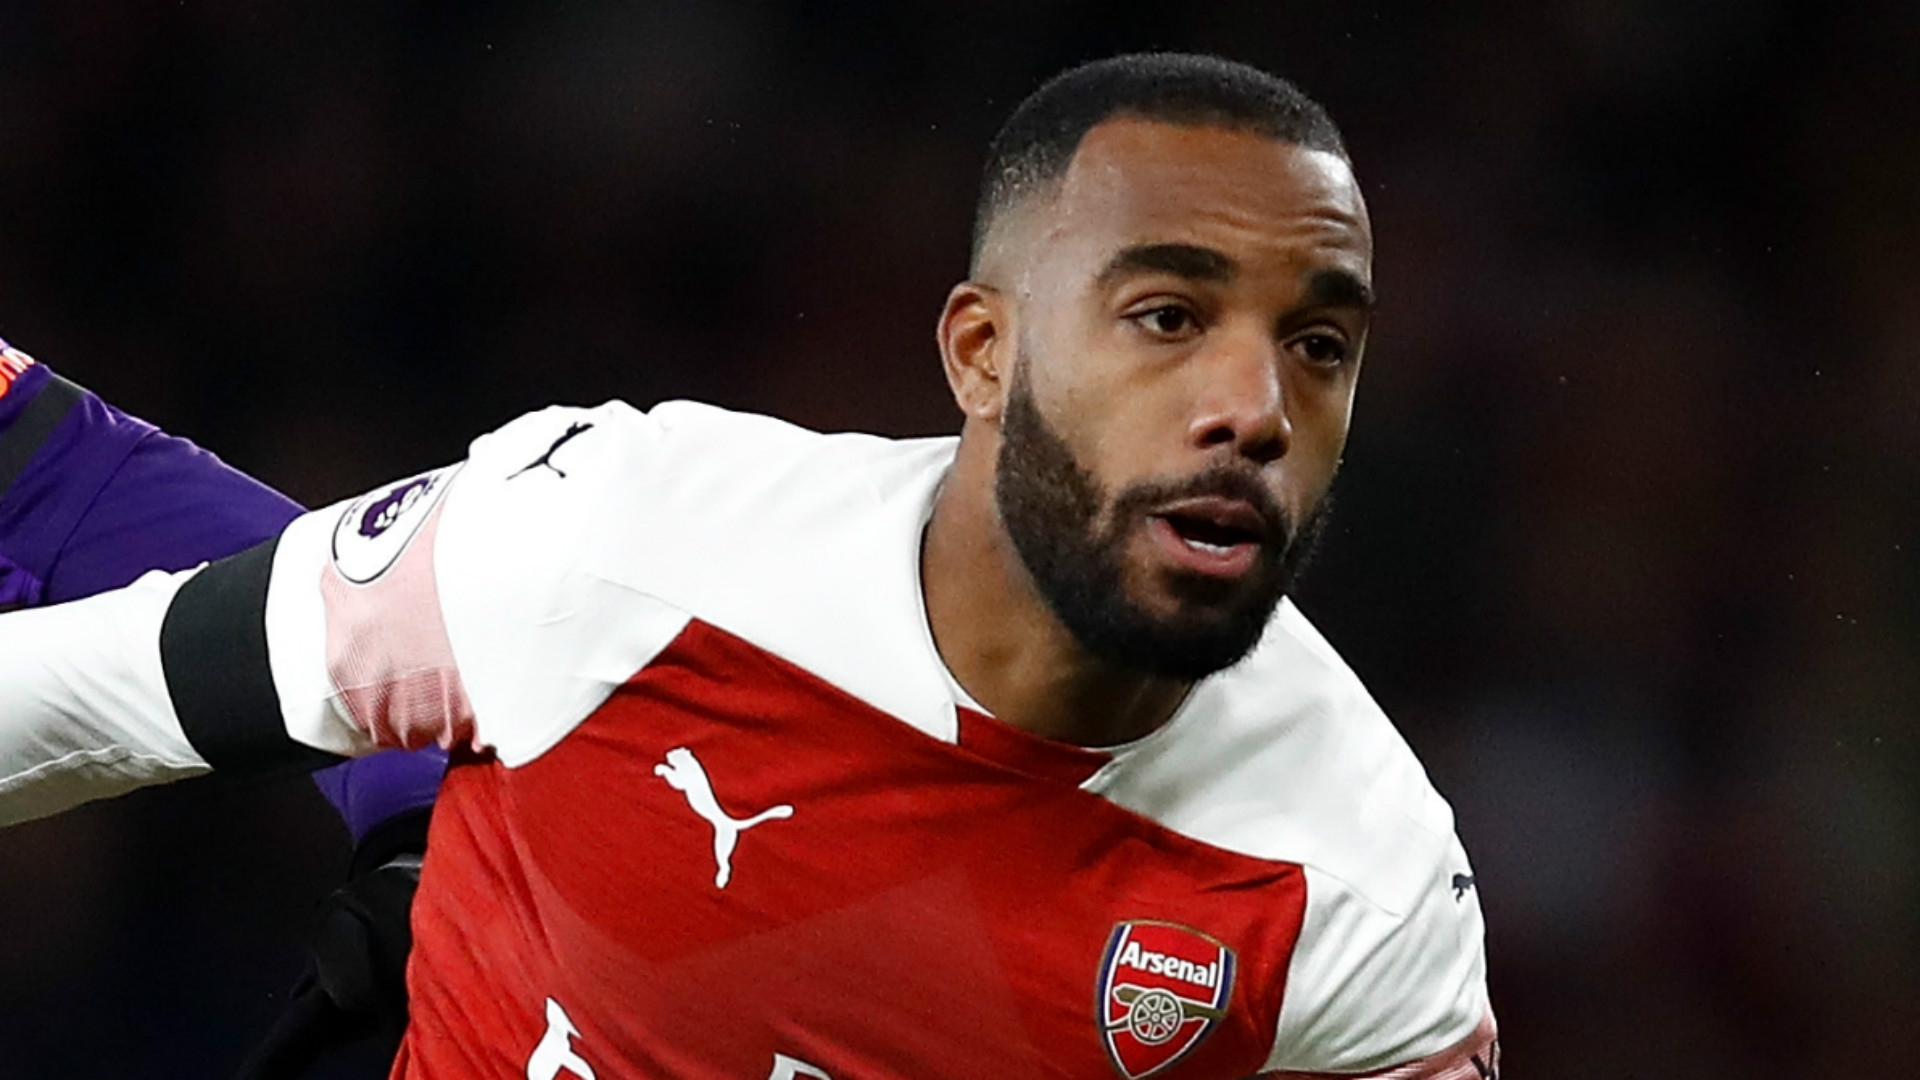 Lacazette pulls out of France squad just hours after inclusion